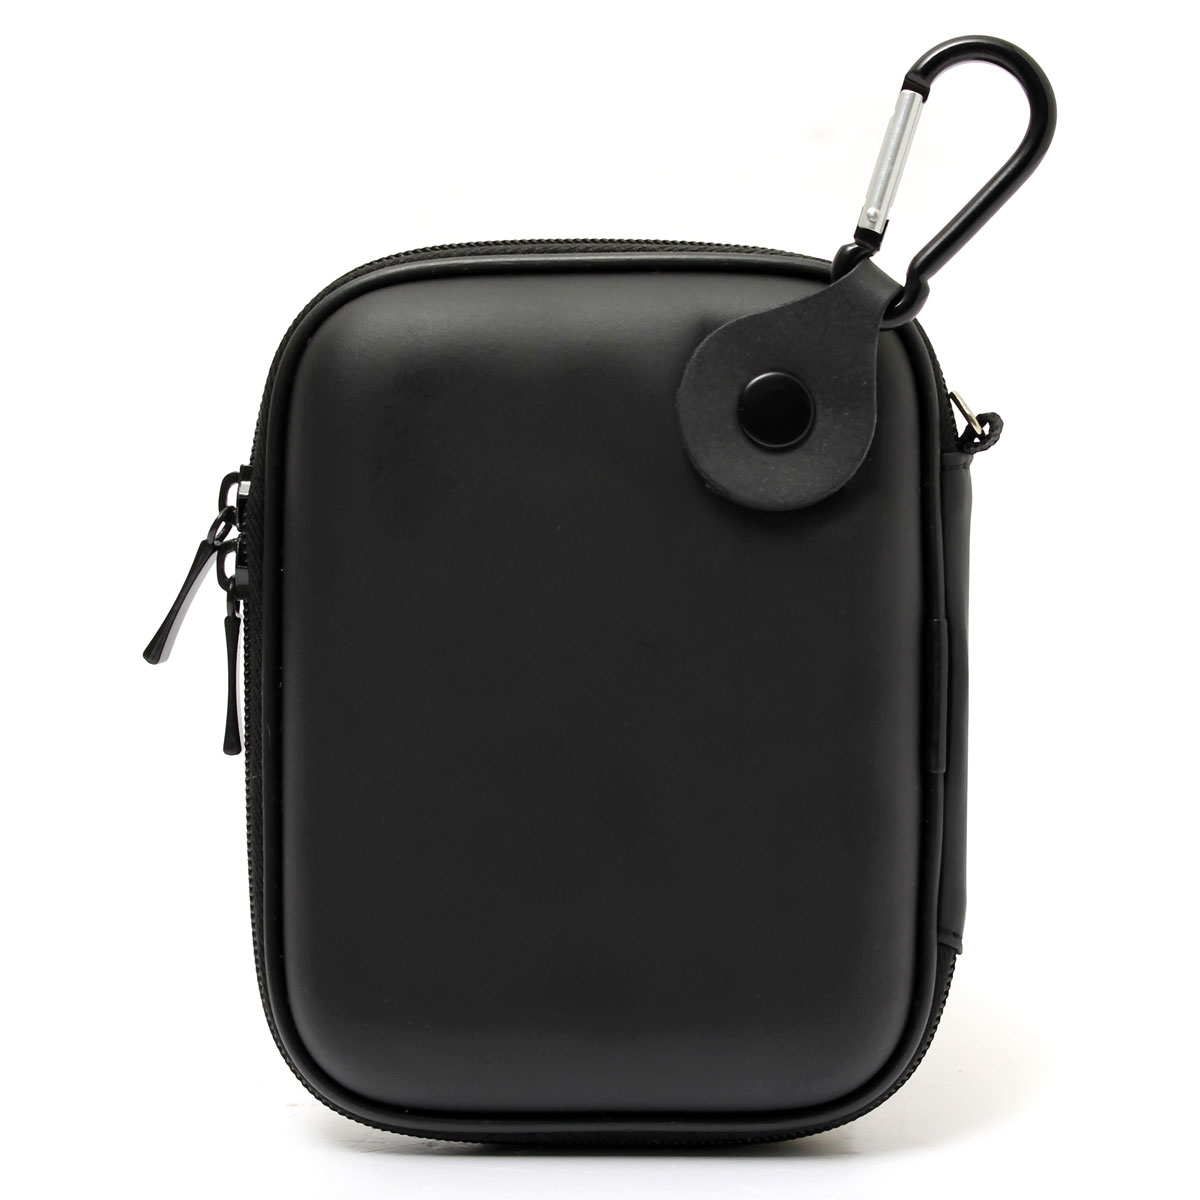 Carrying Hard Case Pouch Bag for Seagate Expansion External Hard Drive Accessory